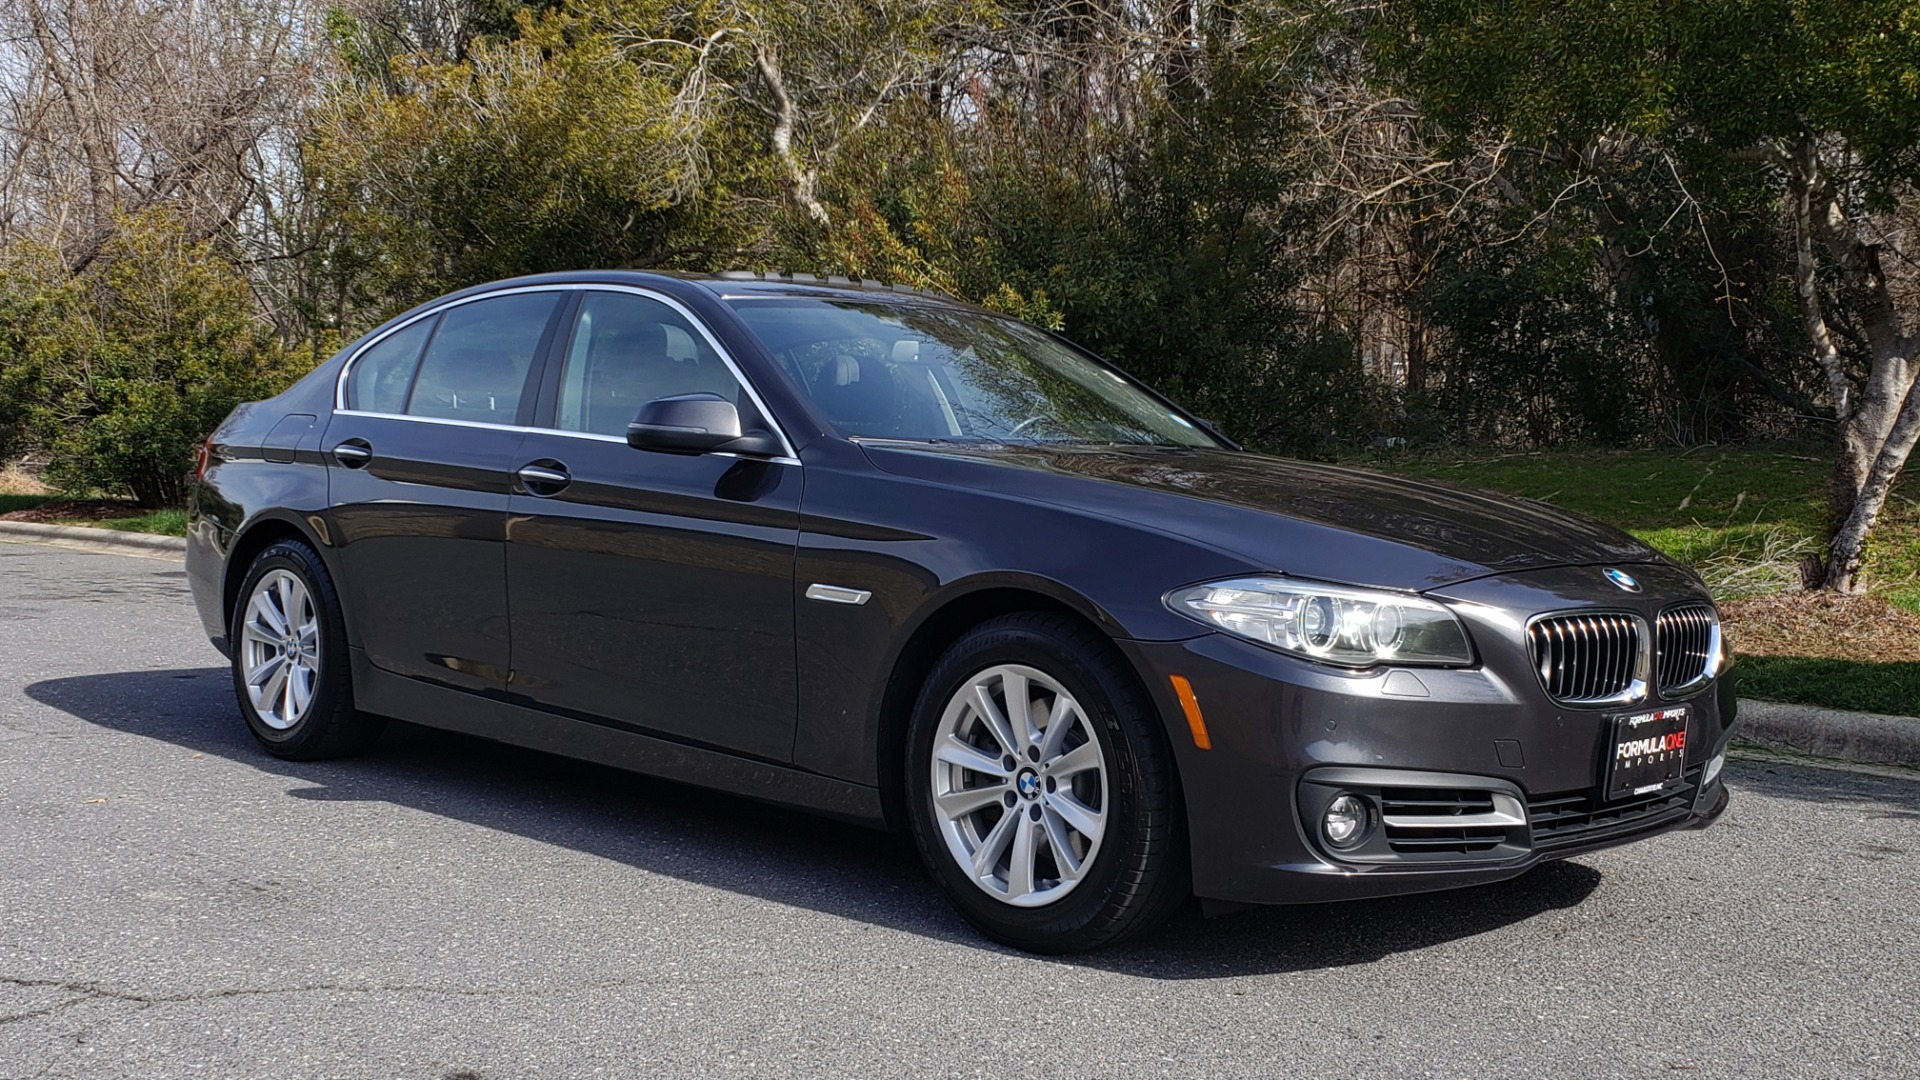 Used 2016 BMW 5 SERIES 528I XDRIVE PREMIUM / CLD WTHR / NAV / SUNROOF / REARVIEW for sale Sold at Formula Imports in Charlotte NC 28227 4